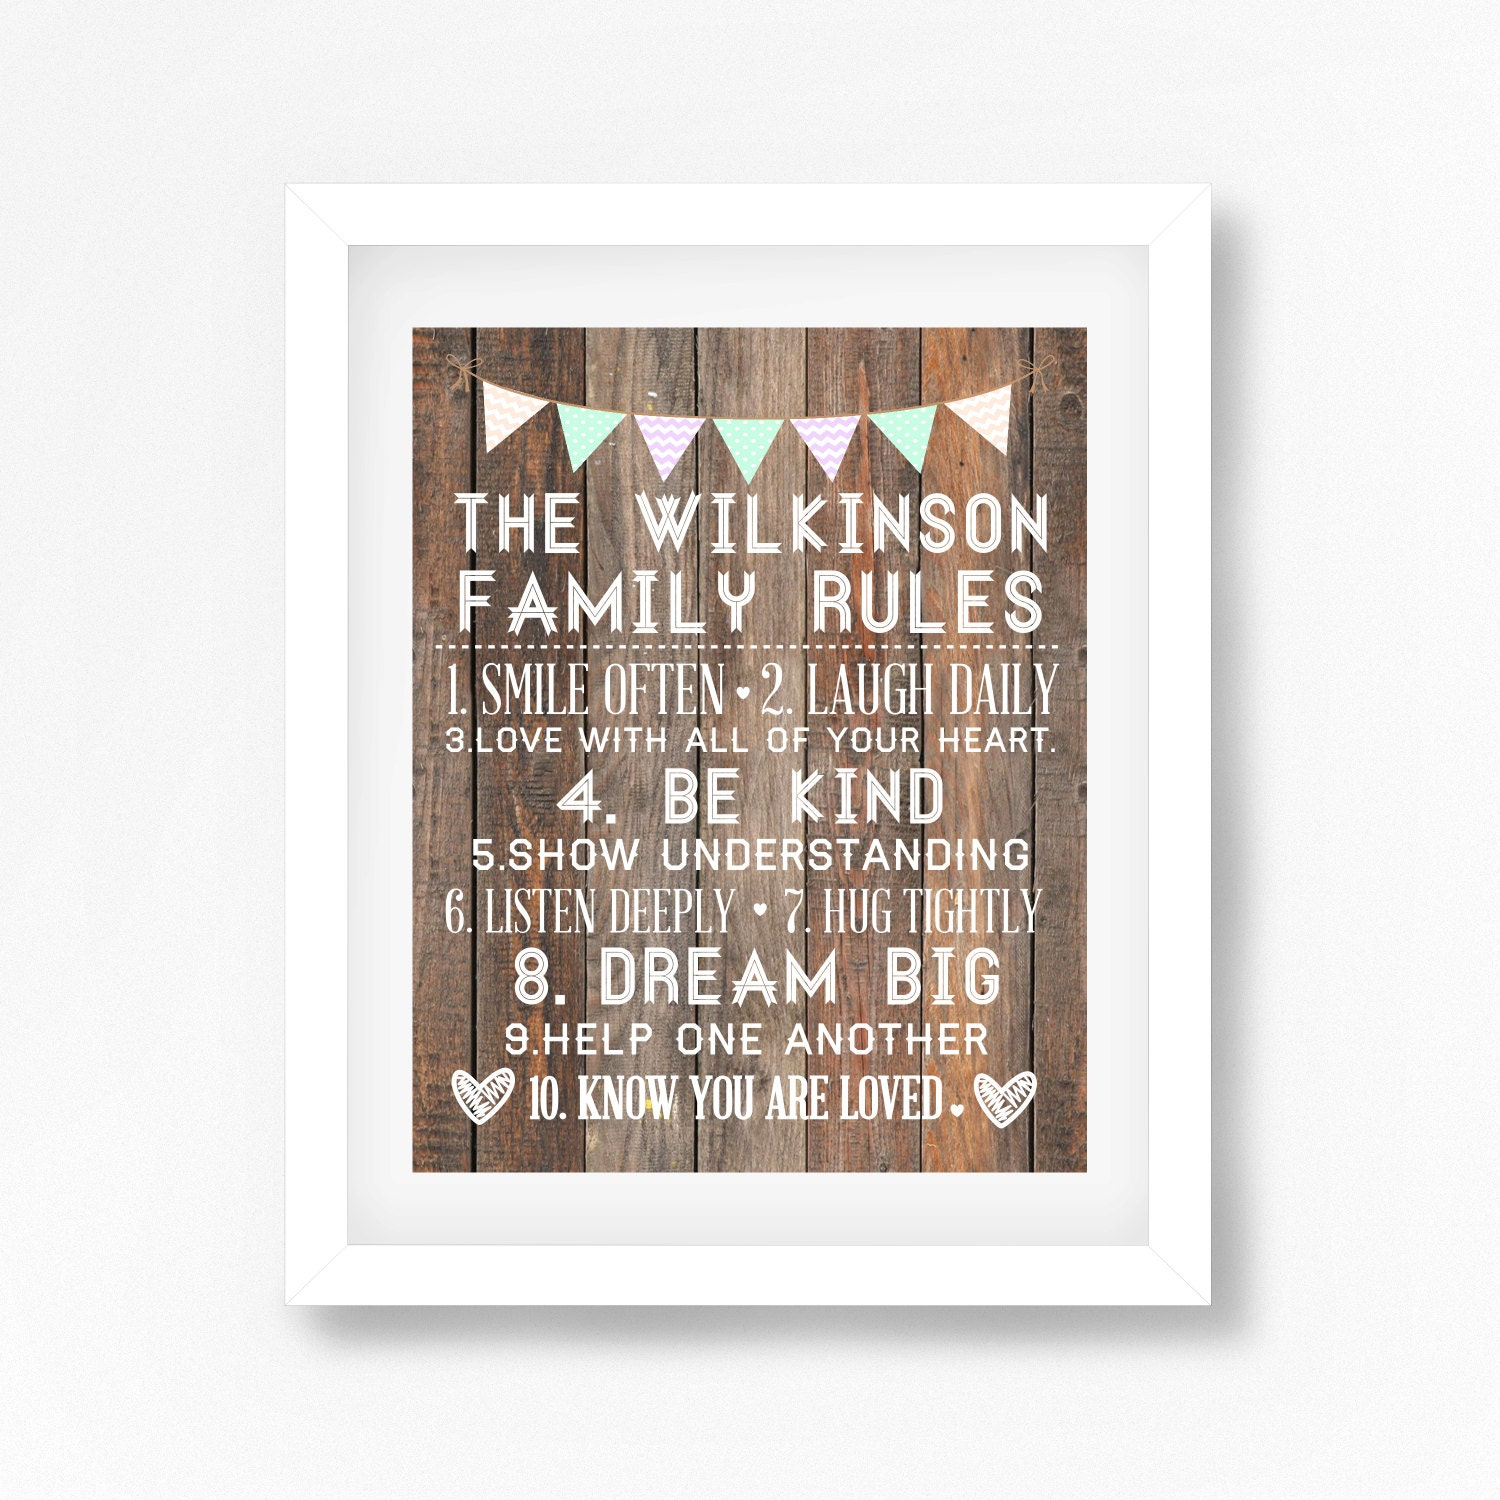 Family rules print home decor print housewarming gift for for Home decorating guidelines